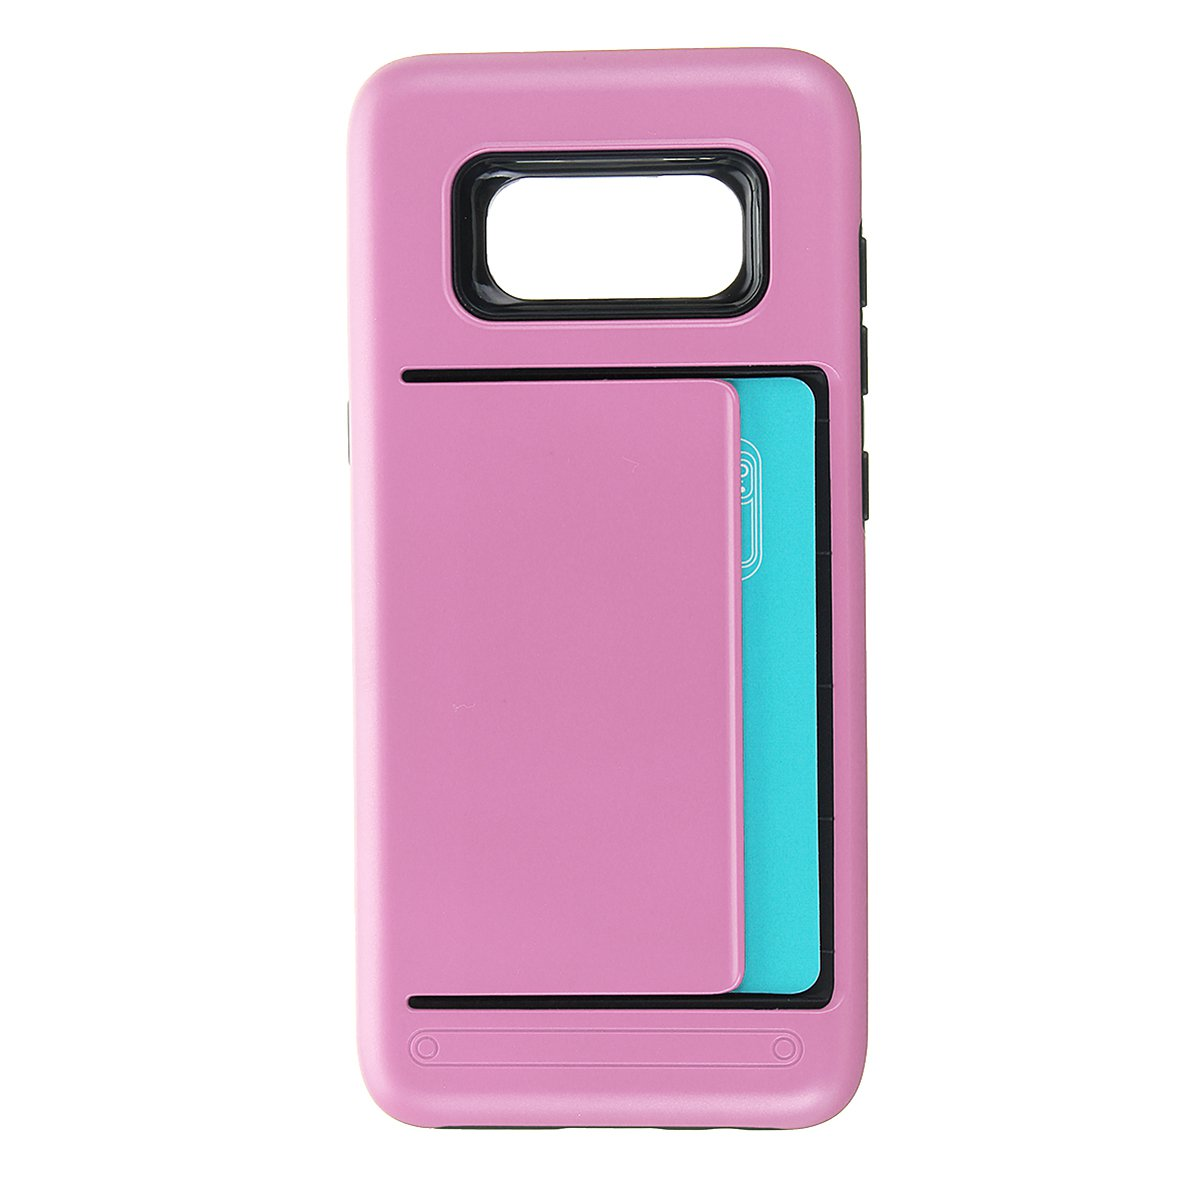 TPU+PC Hybrid Card-slots Shockproof Armor Cover Case For Samsung Galaxy S8 Plus:Pink